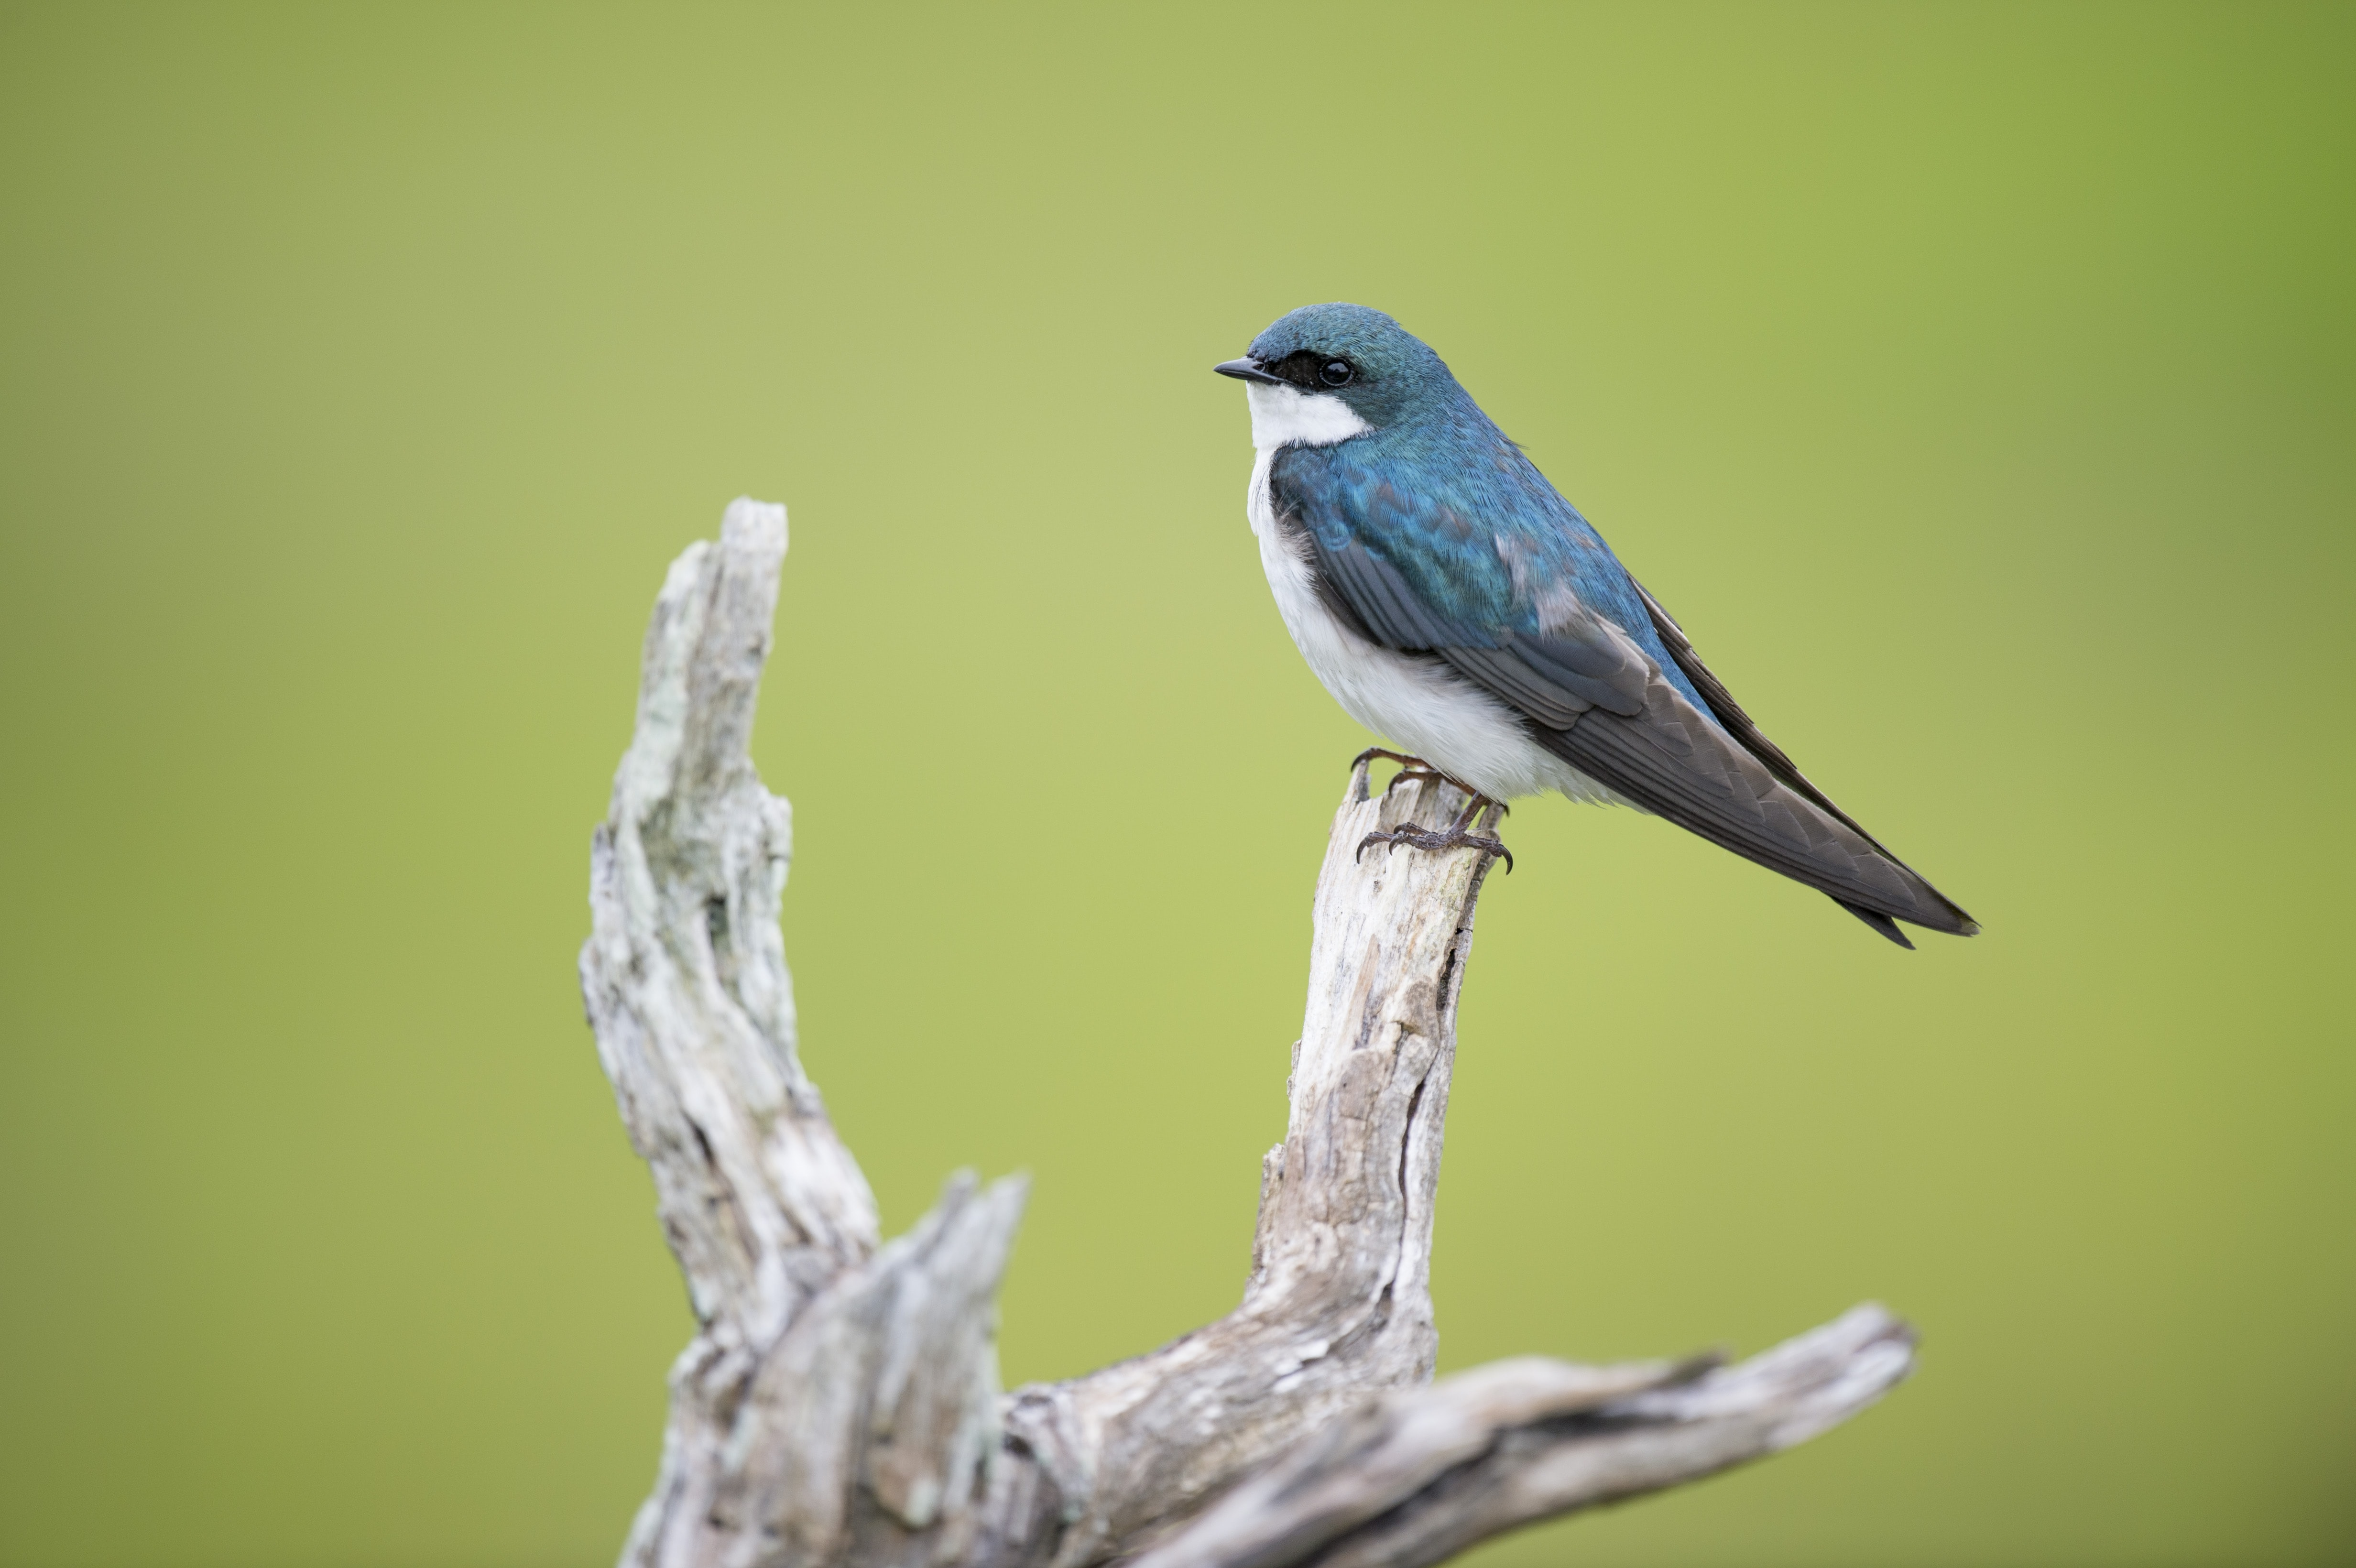 Blue bird perched on a piece of driftwood